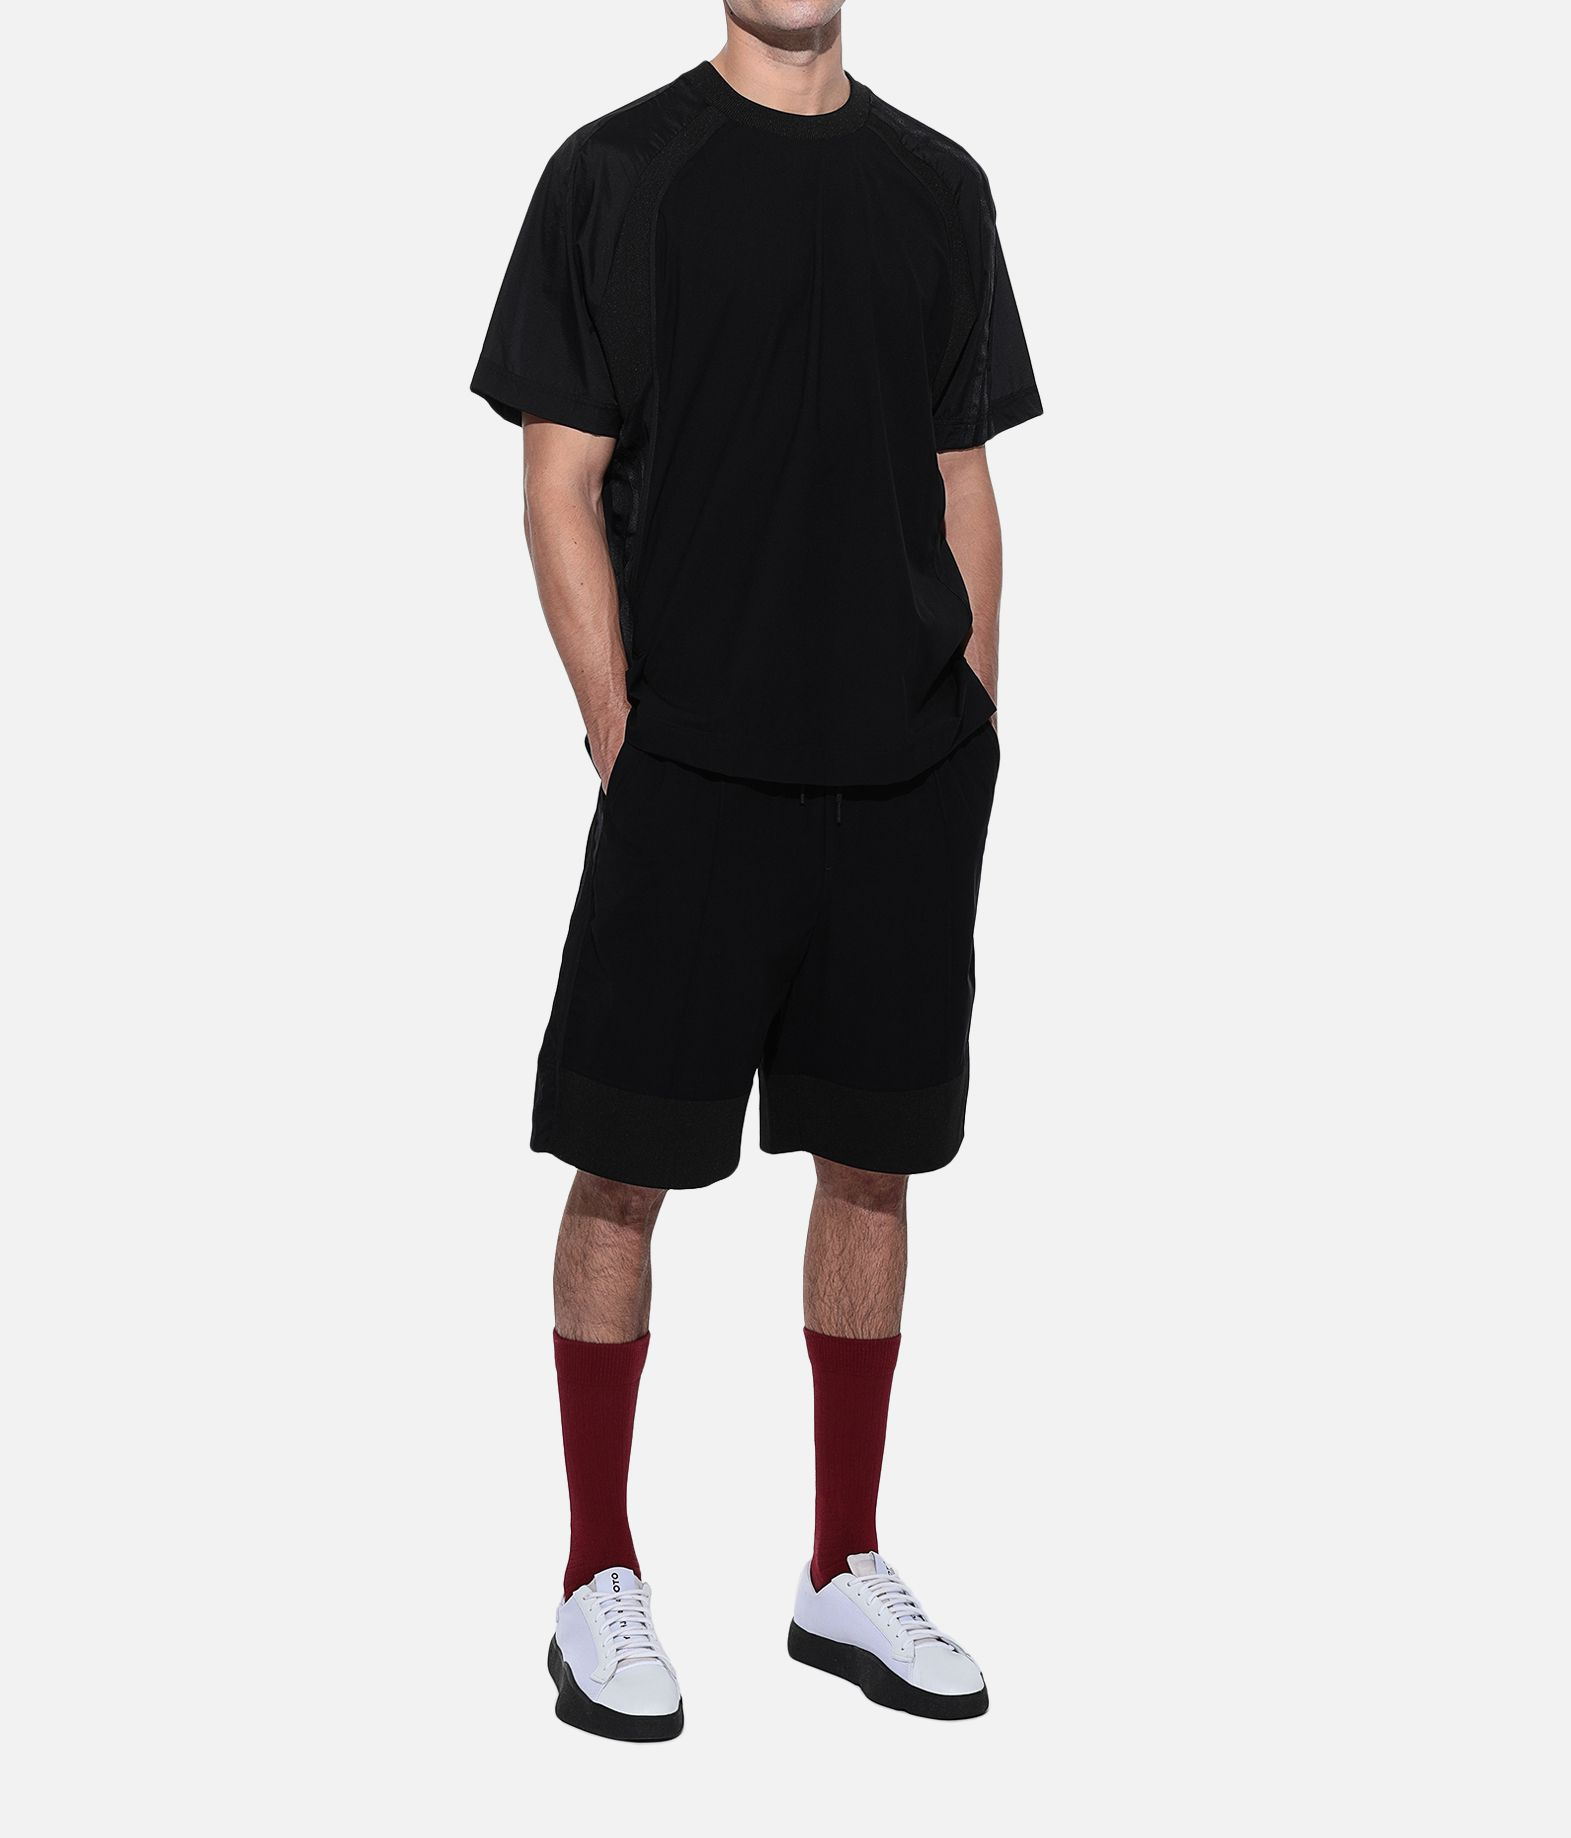 Y-3 Y-3 3-Stripes Material Mix Shorts Shorts Man a